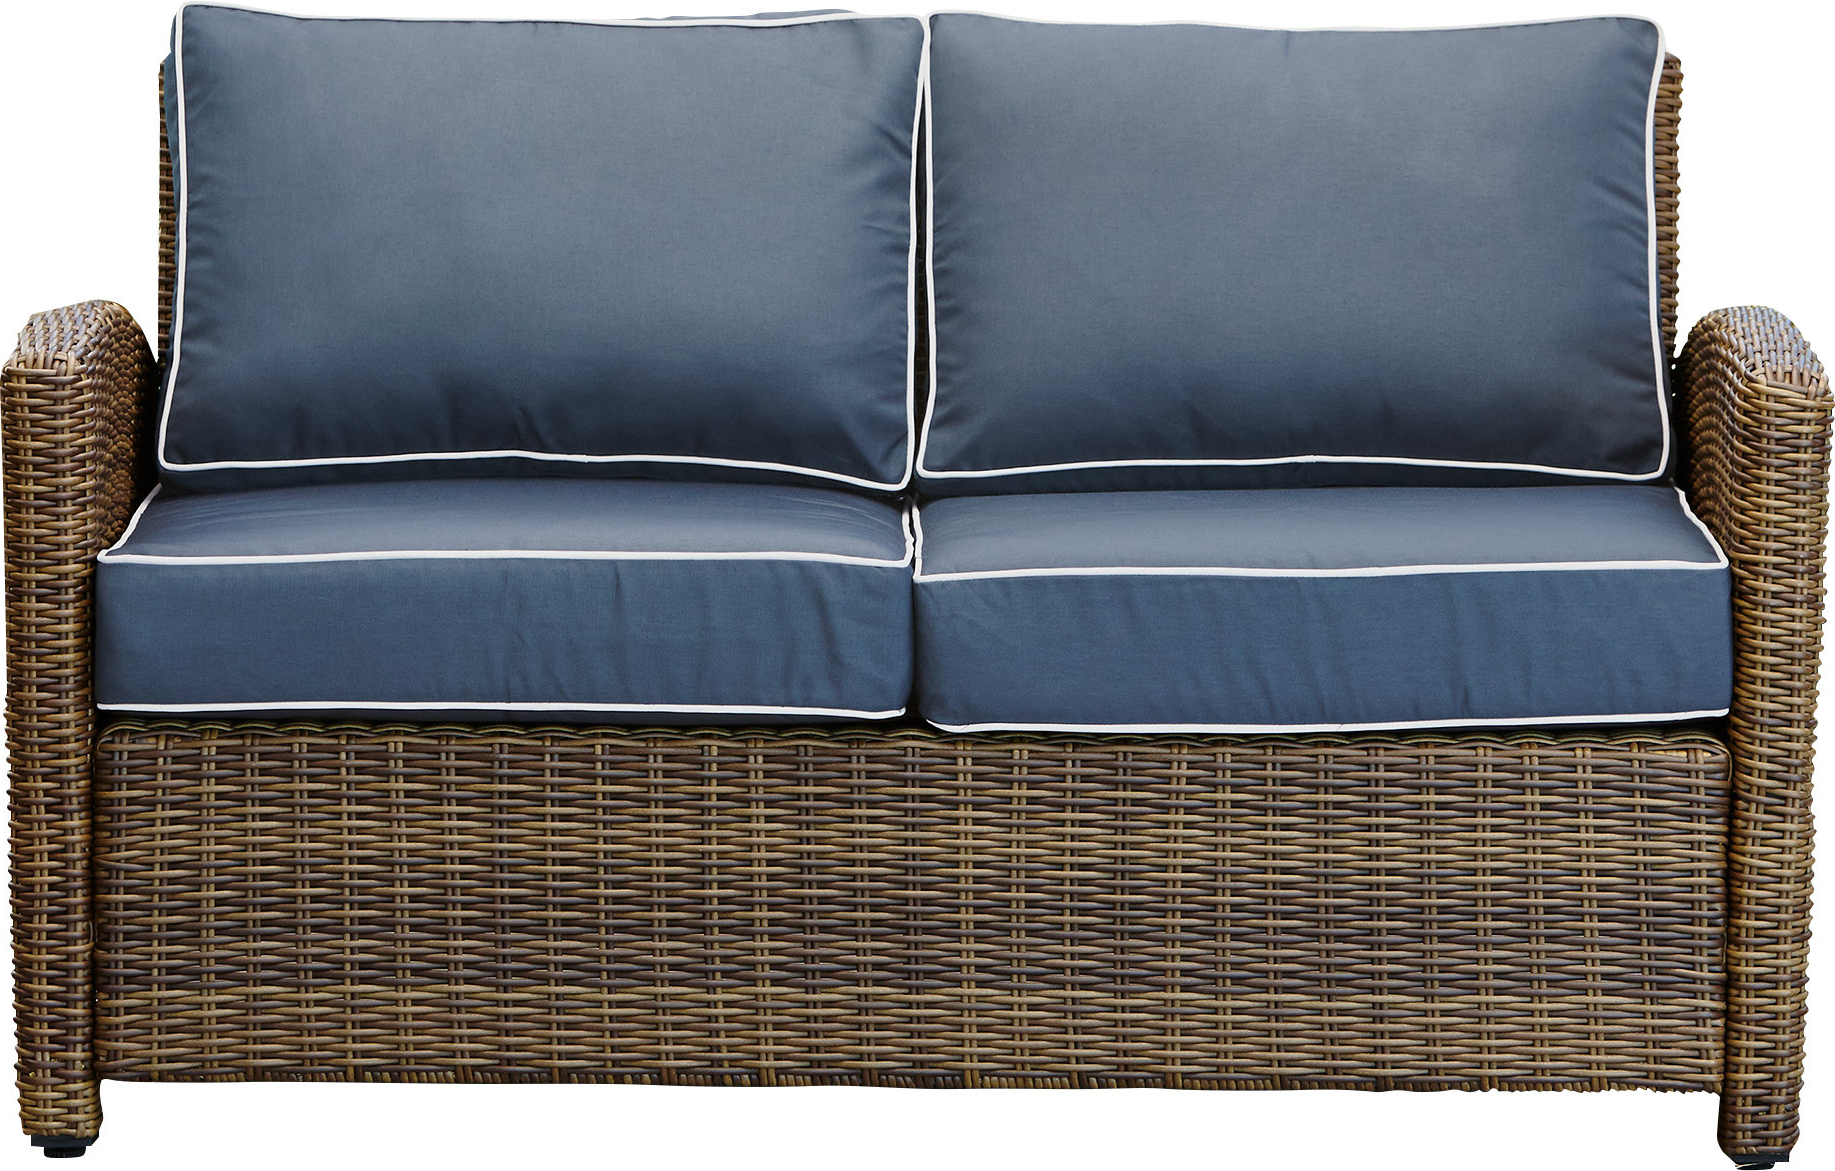 Kunz Loveseats With Cushions Within Current Modern Outdoor Loveseats (View 6 of 20)